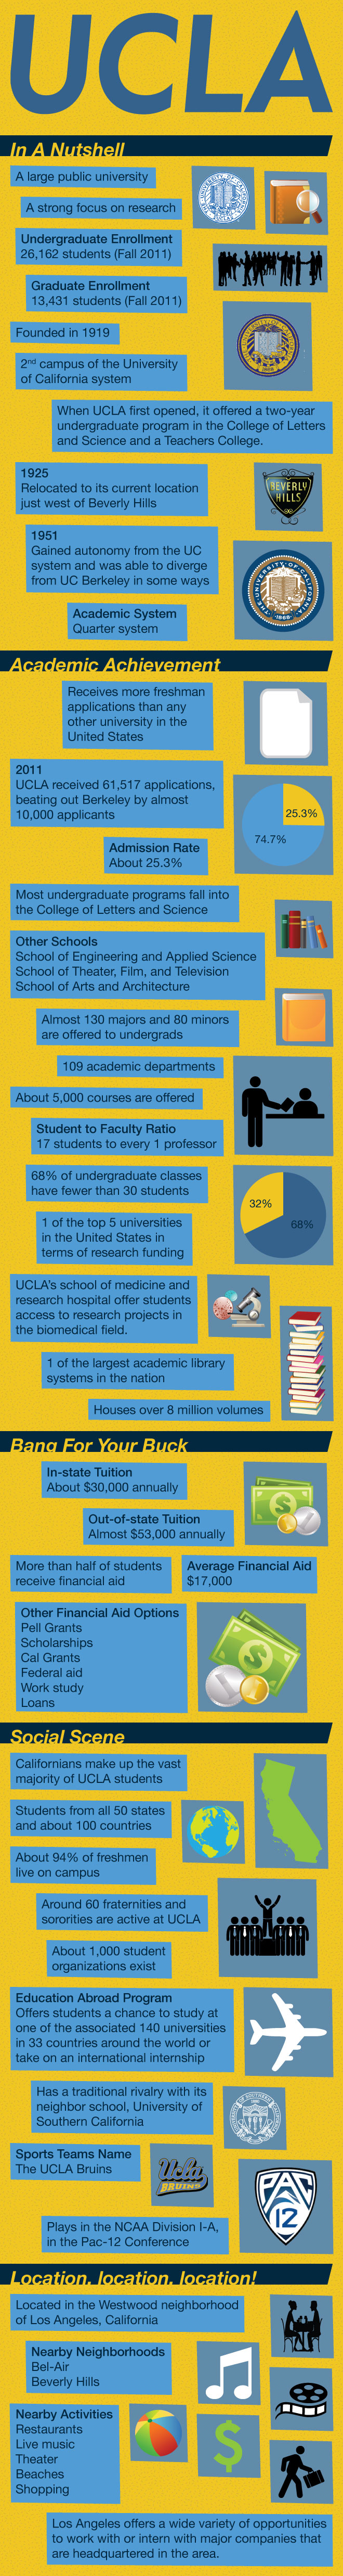 Nice Blogpost About University Of California In Los Angeles Ucla Infographic By Mowpages Ucla University Of California Usa University